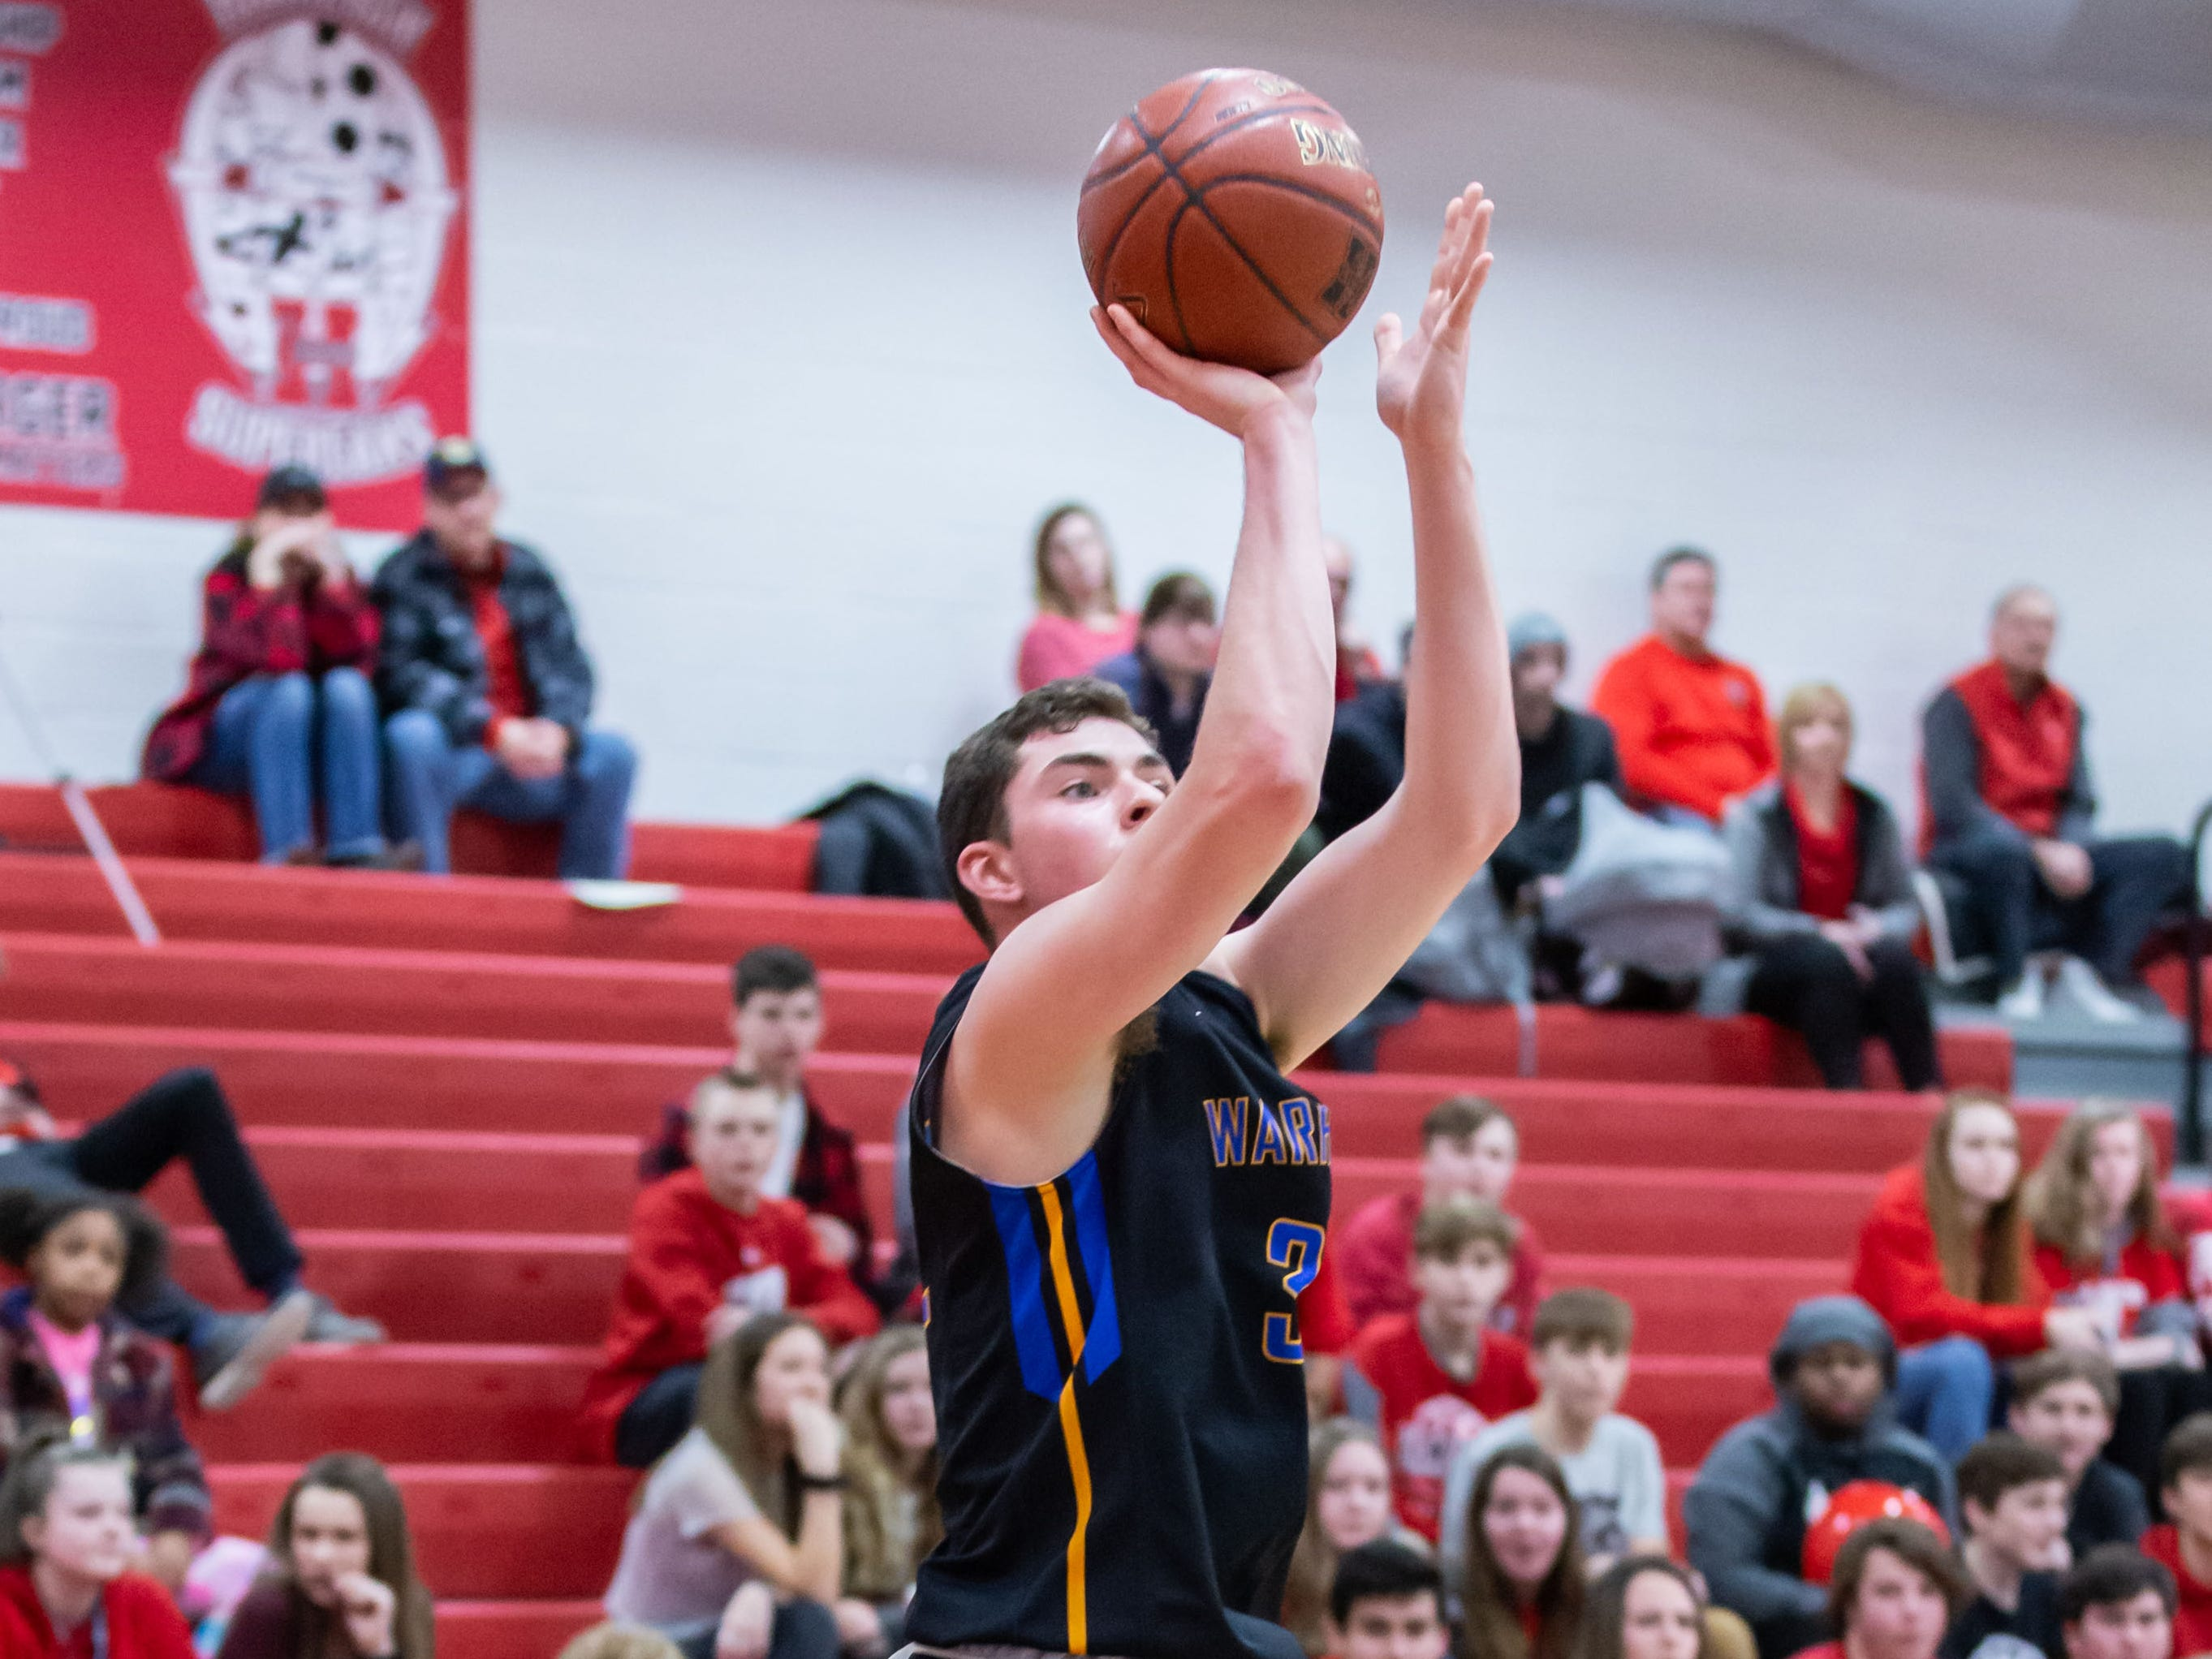 Germantown's Luke Taylor (32) elevates for a shot during the game at Hamilton on Thursday, Feb. 14, 2019.